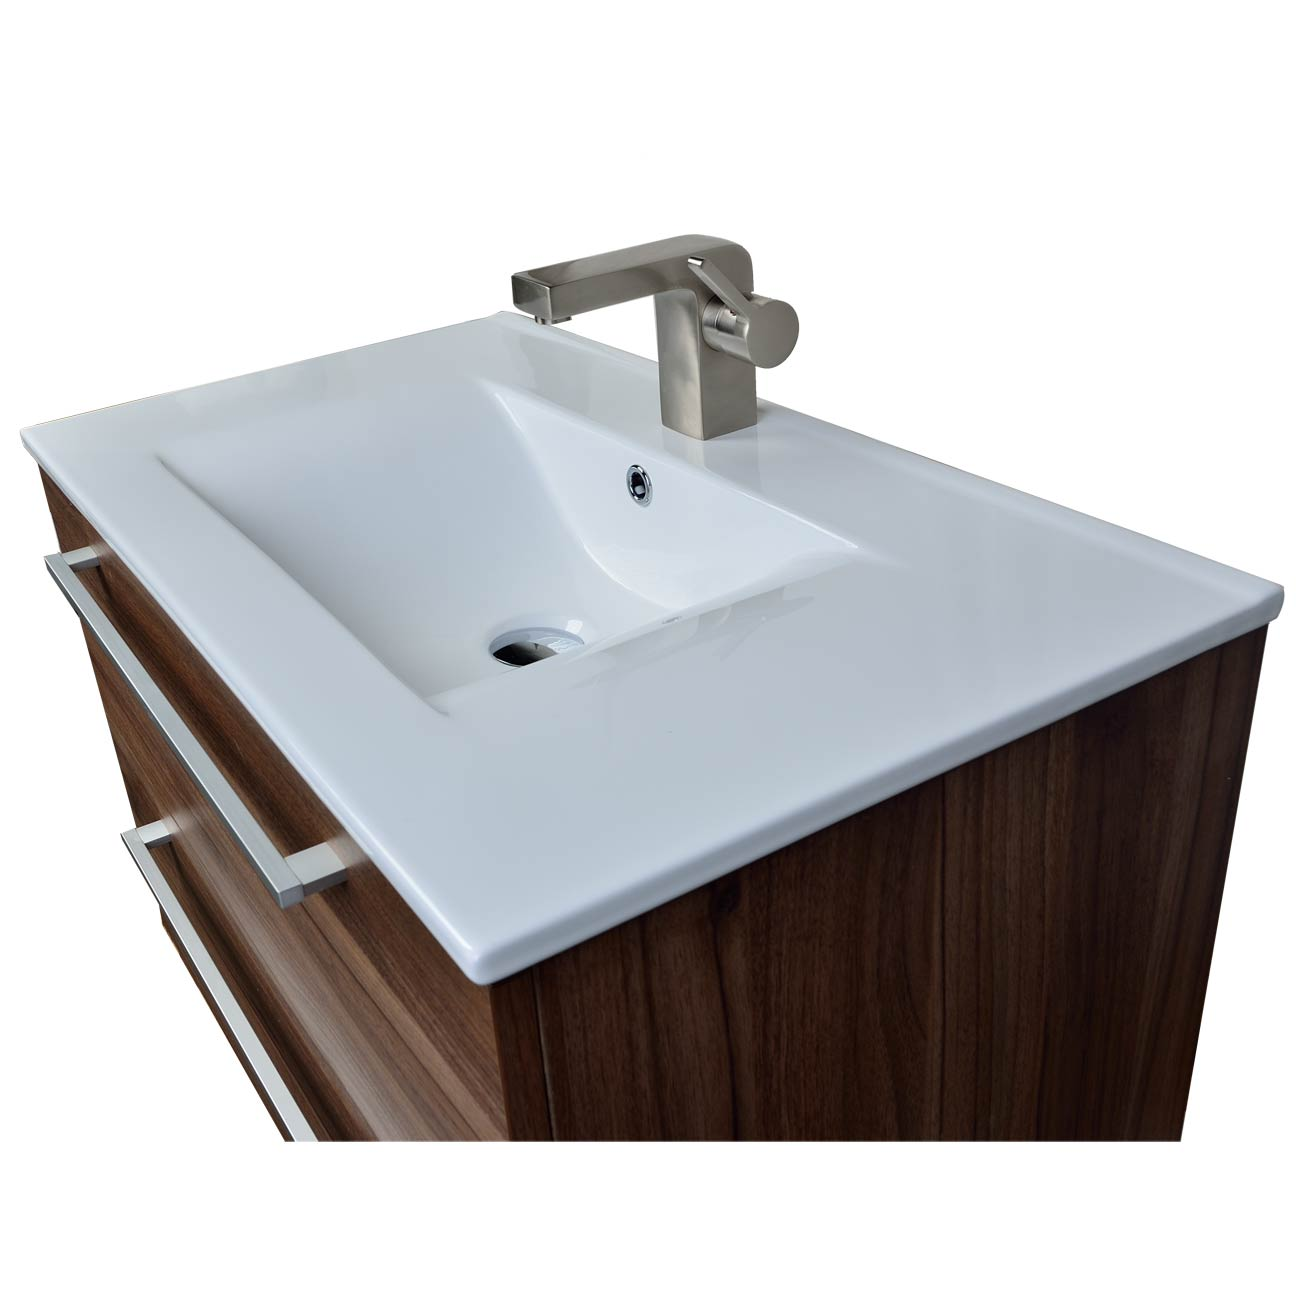 Modern Wall Mount Bathroom Vanity Cbi Walnut RS DM800 WN